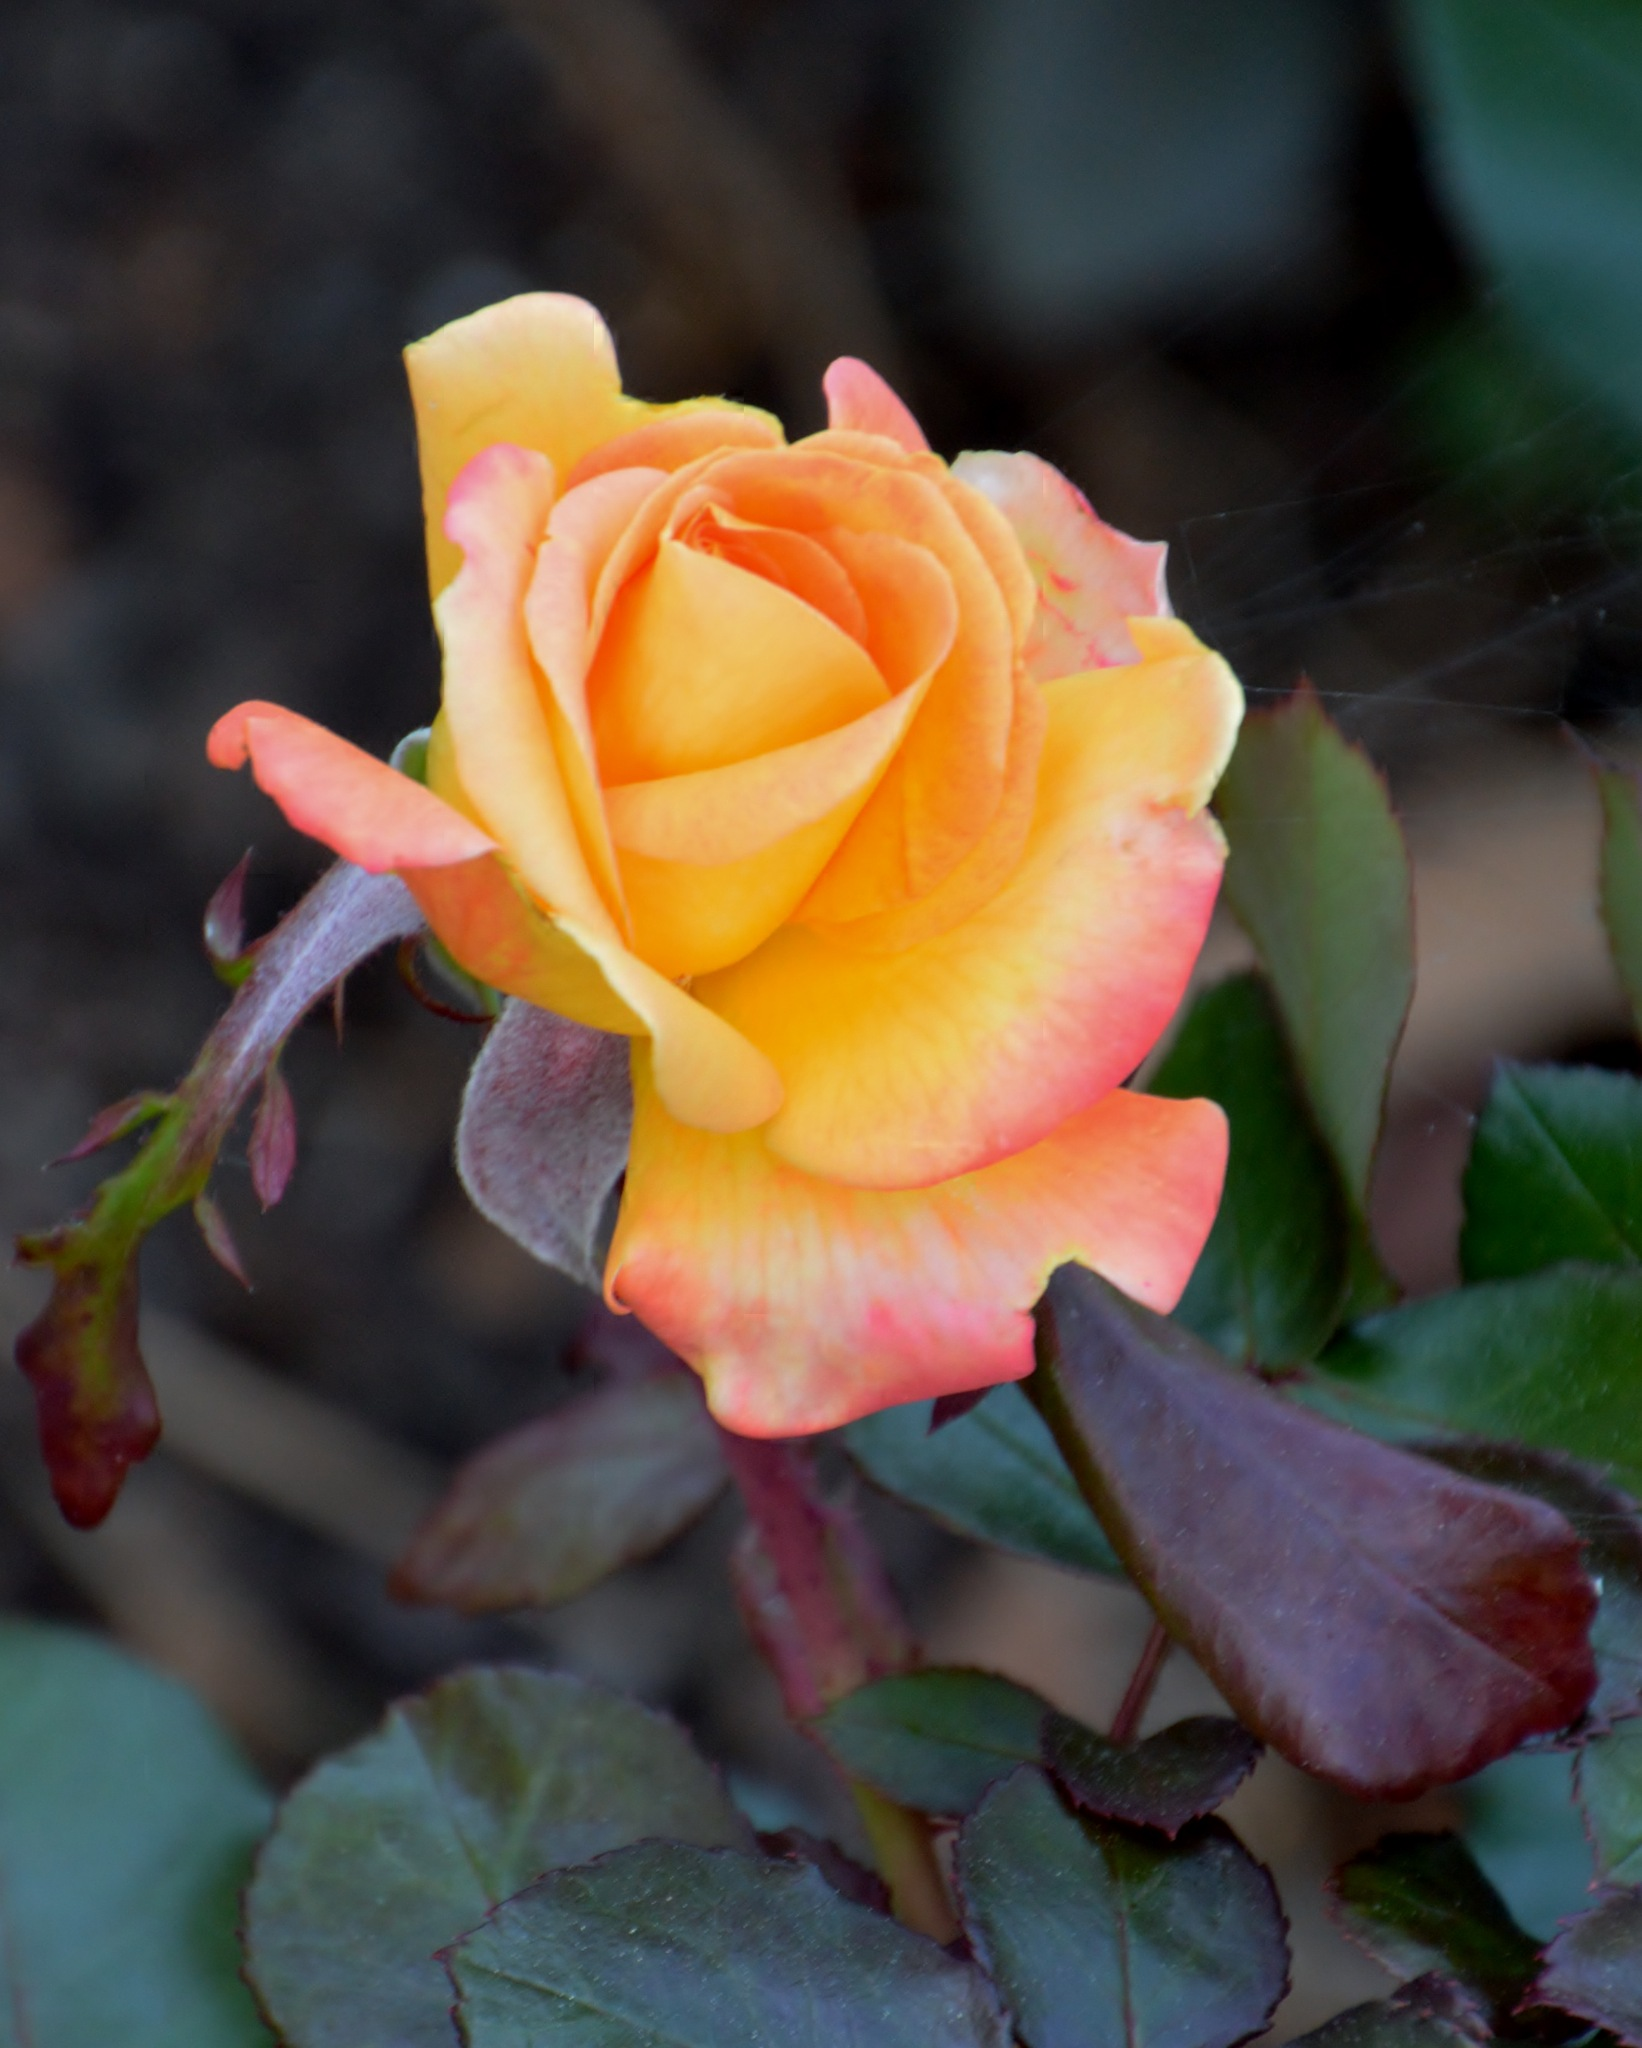 A Rose by CaliforniaPeggy